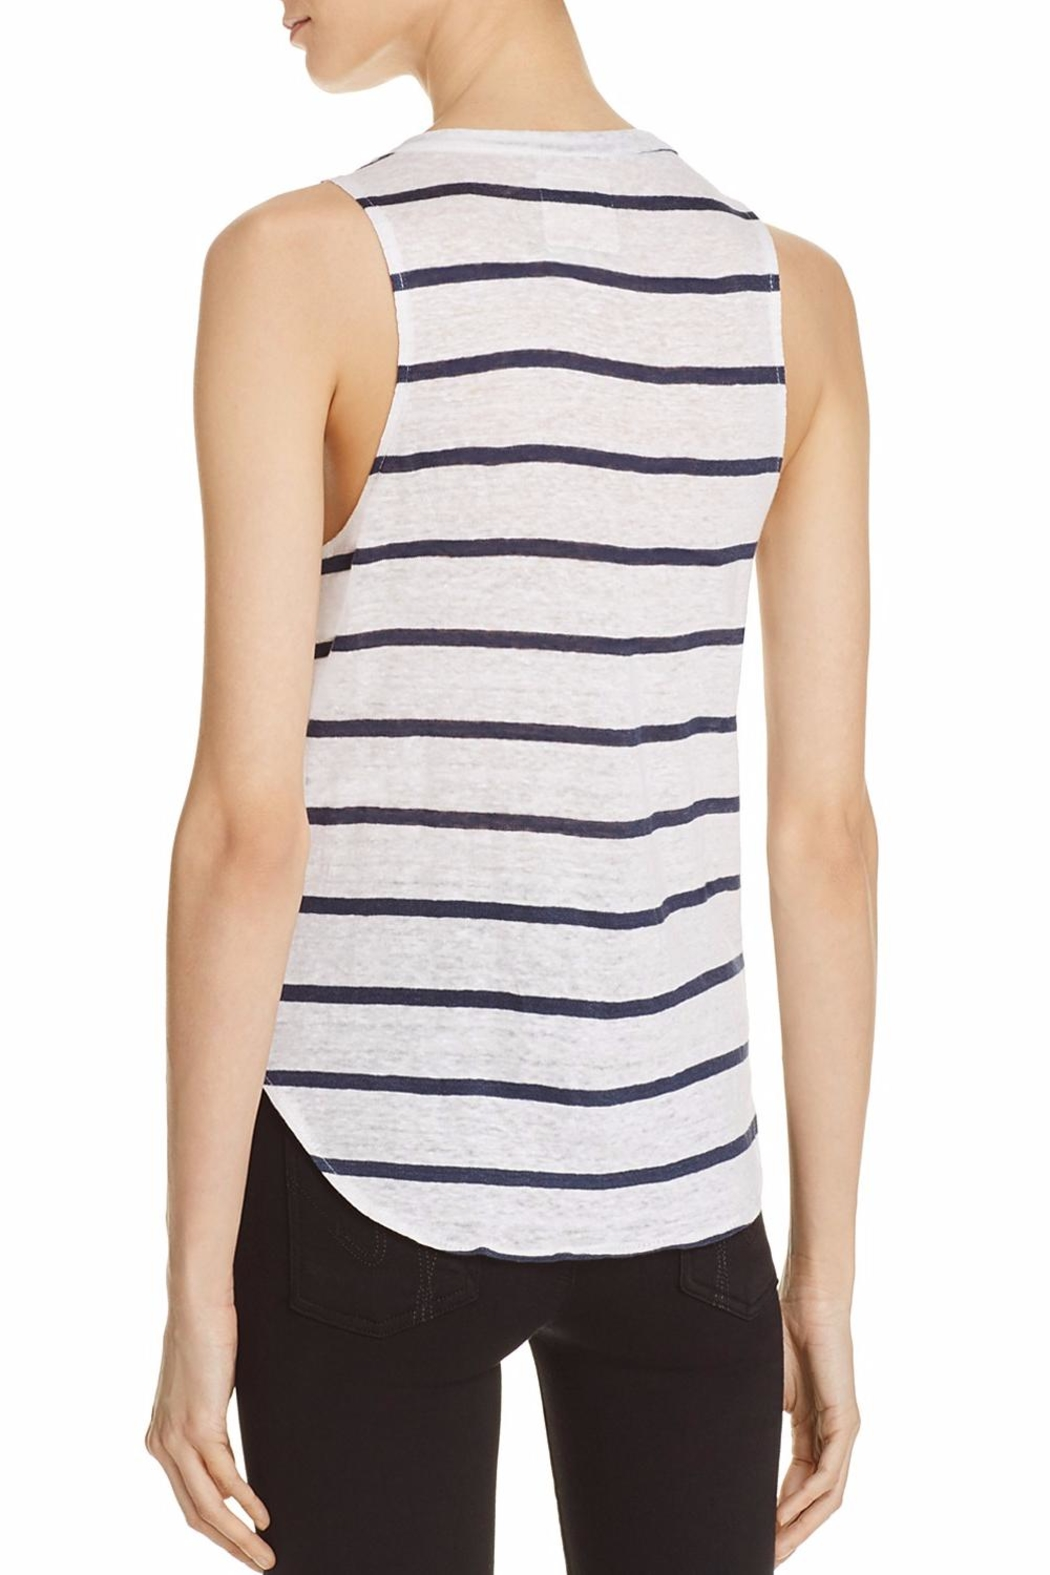 Chaser Stripe Pocket Tank - Front Full Image